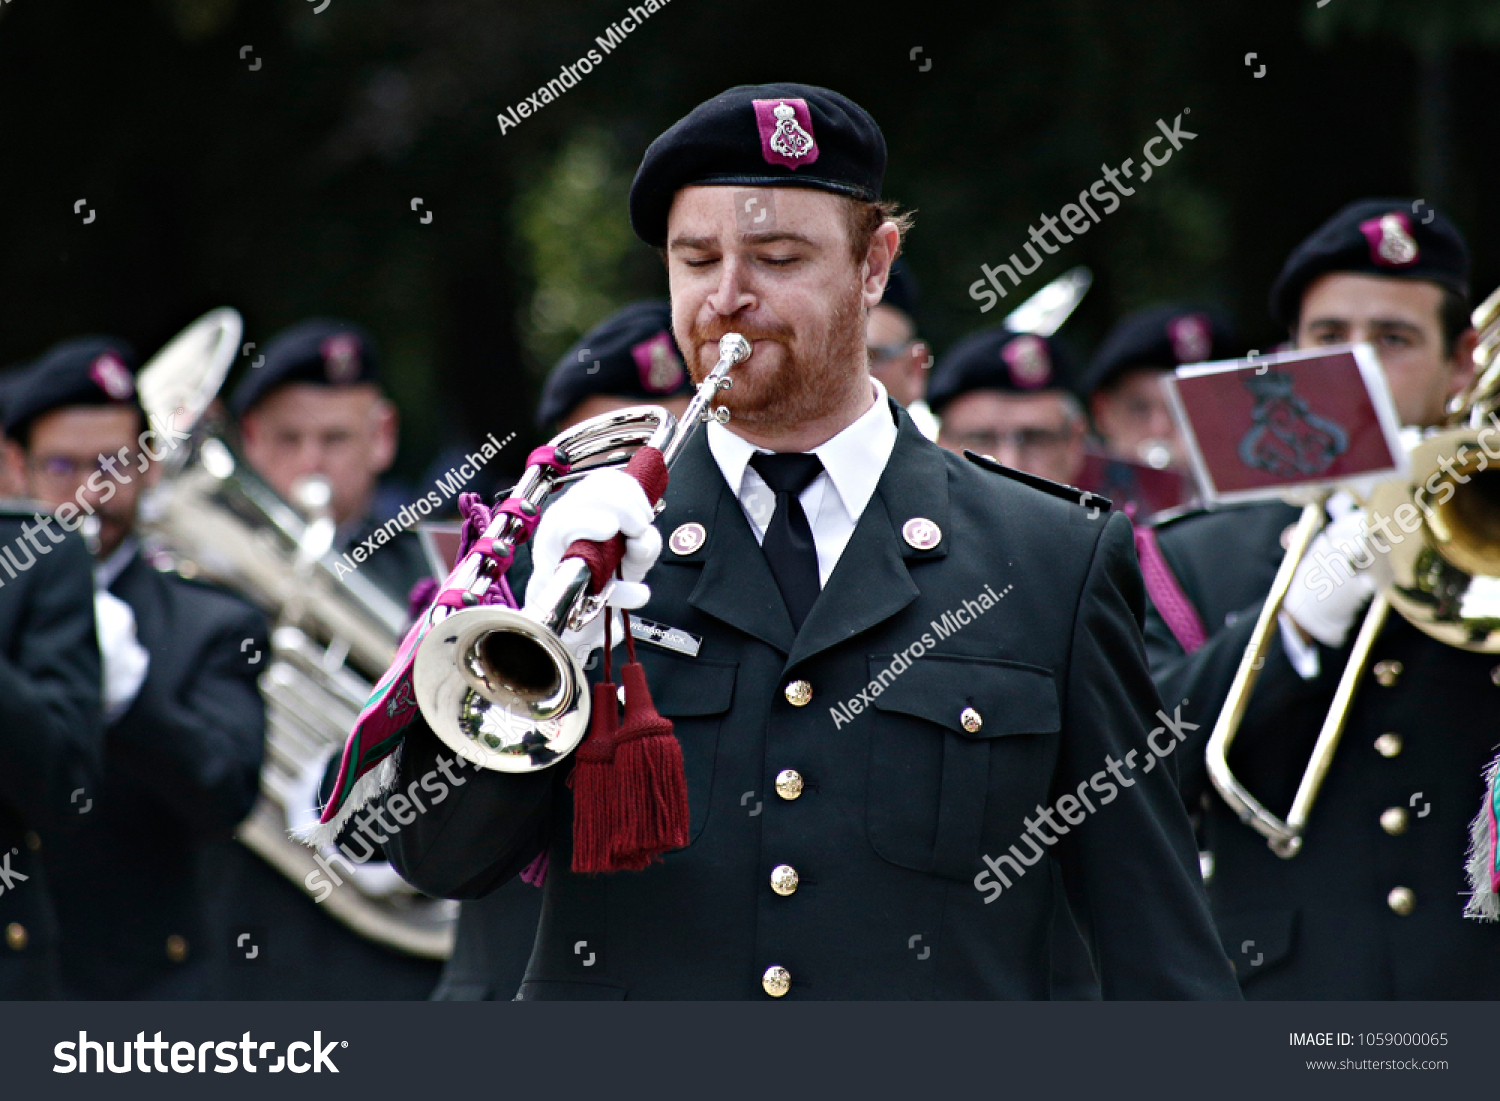 3c603725a71 Members of Belgian Army band perform during the visit of Chinese Prime  Minister Li Keqiang in